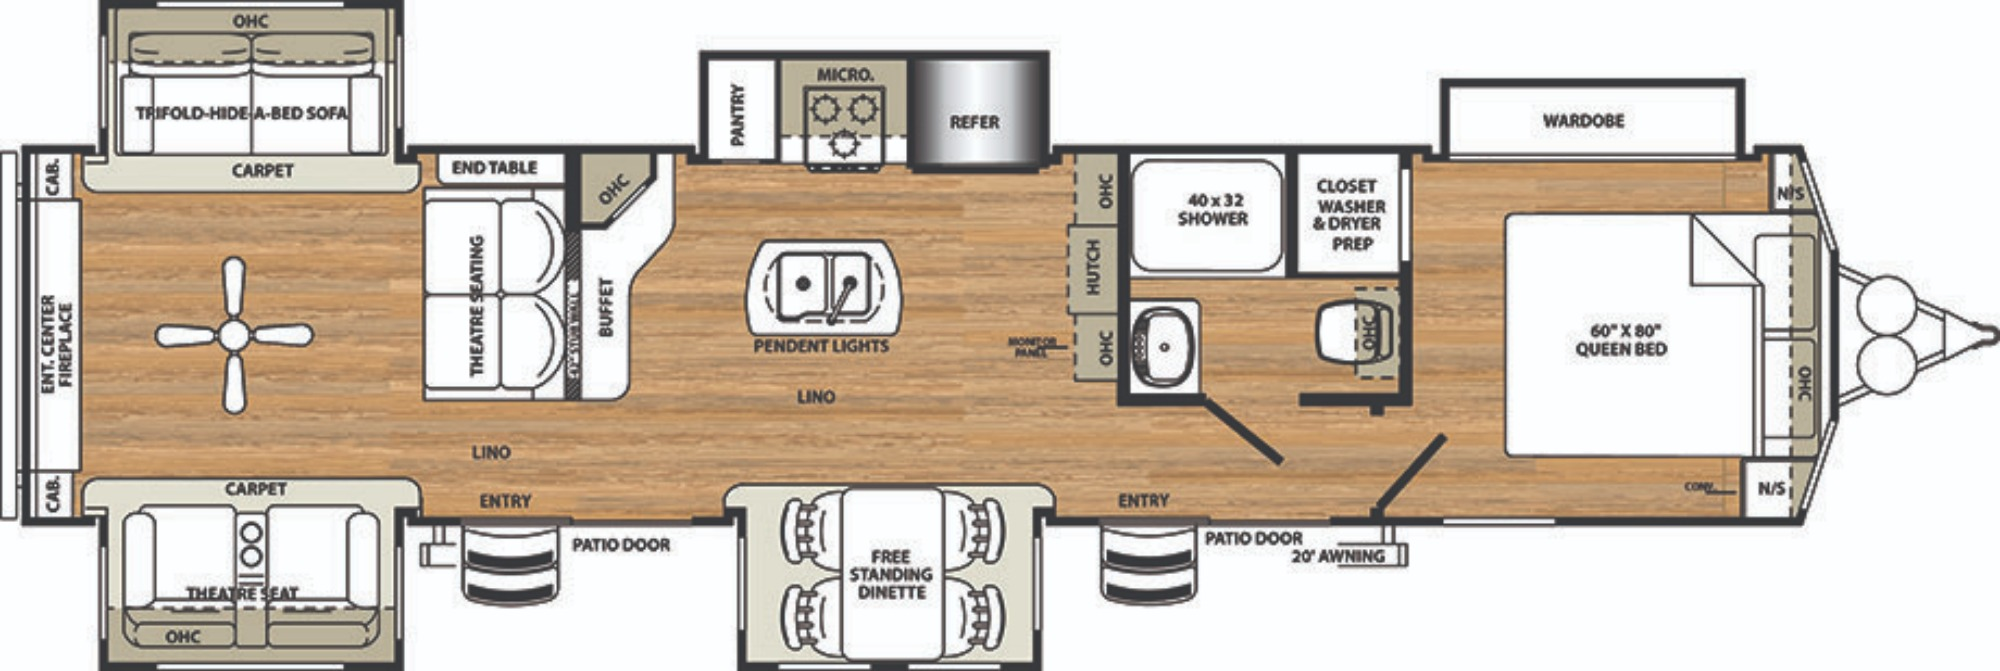 View Floor Plan for 2019 FOREST RIVER SIERRA 403RD